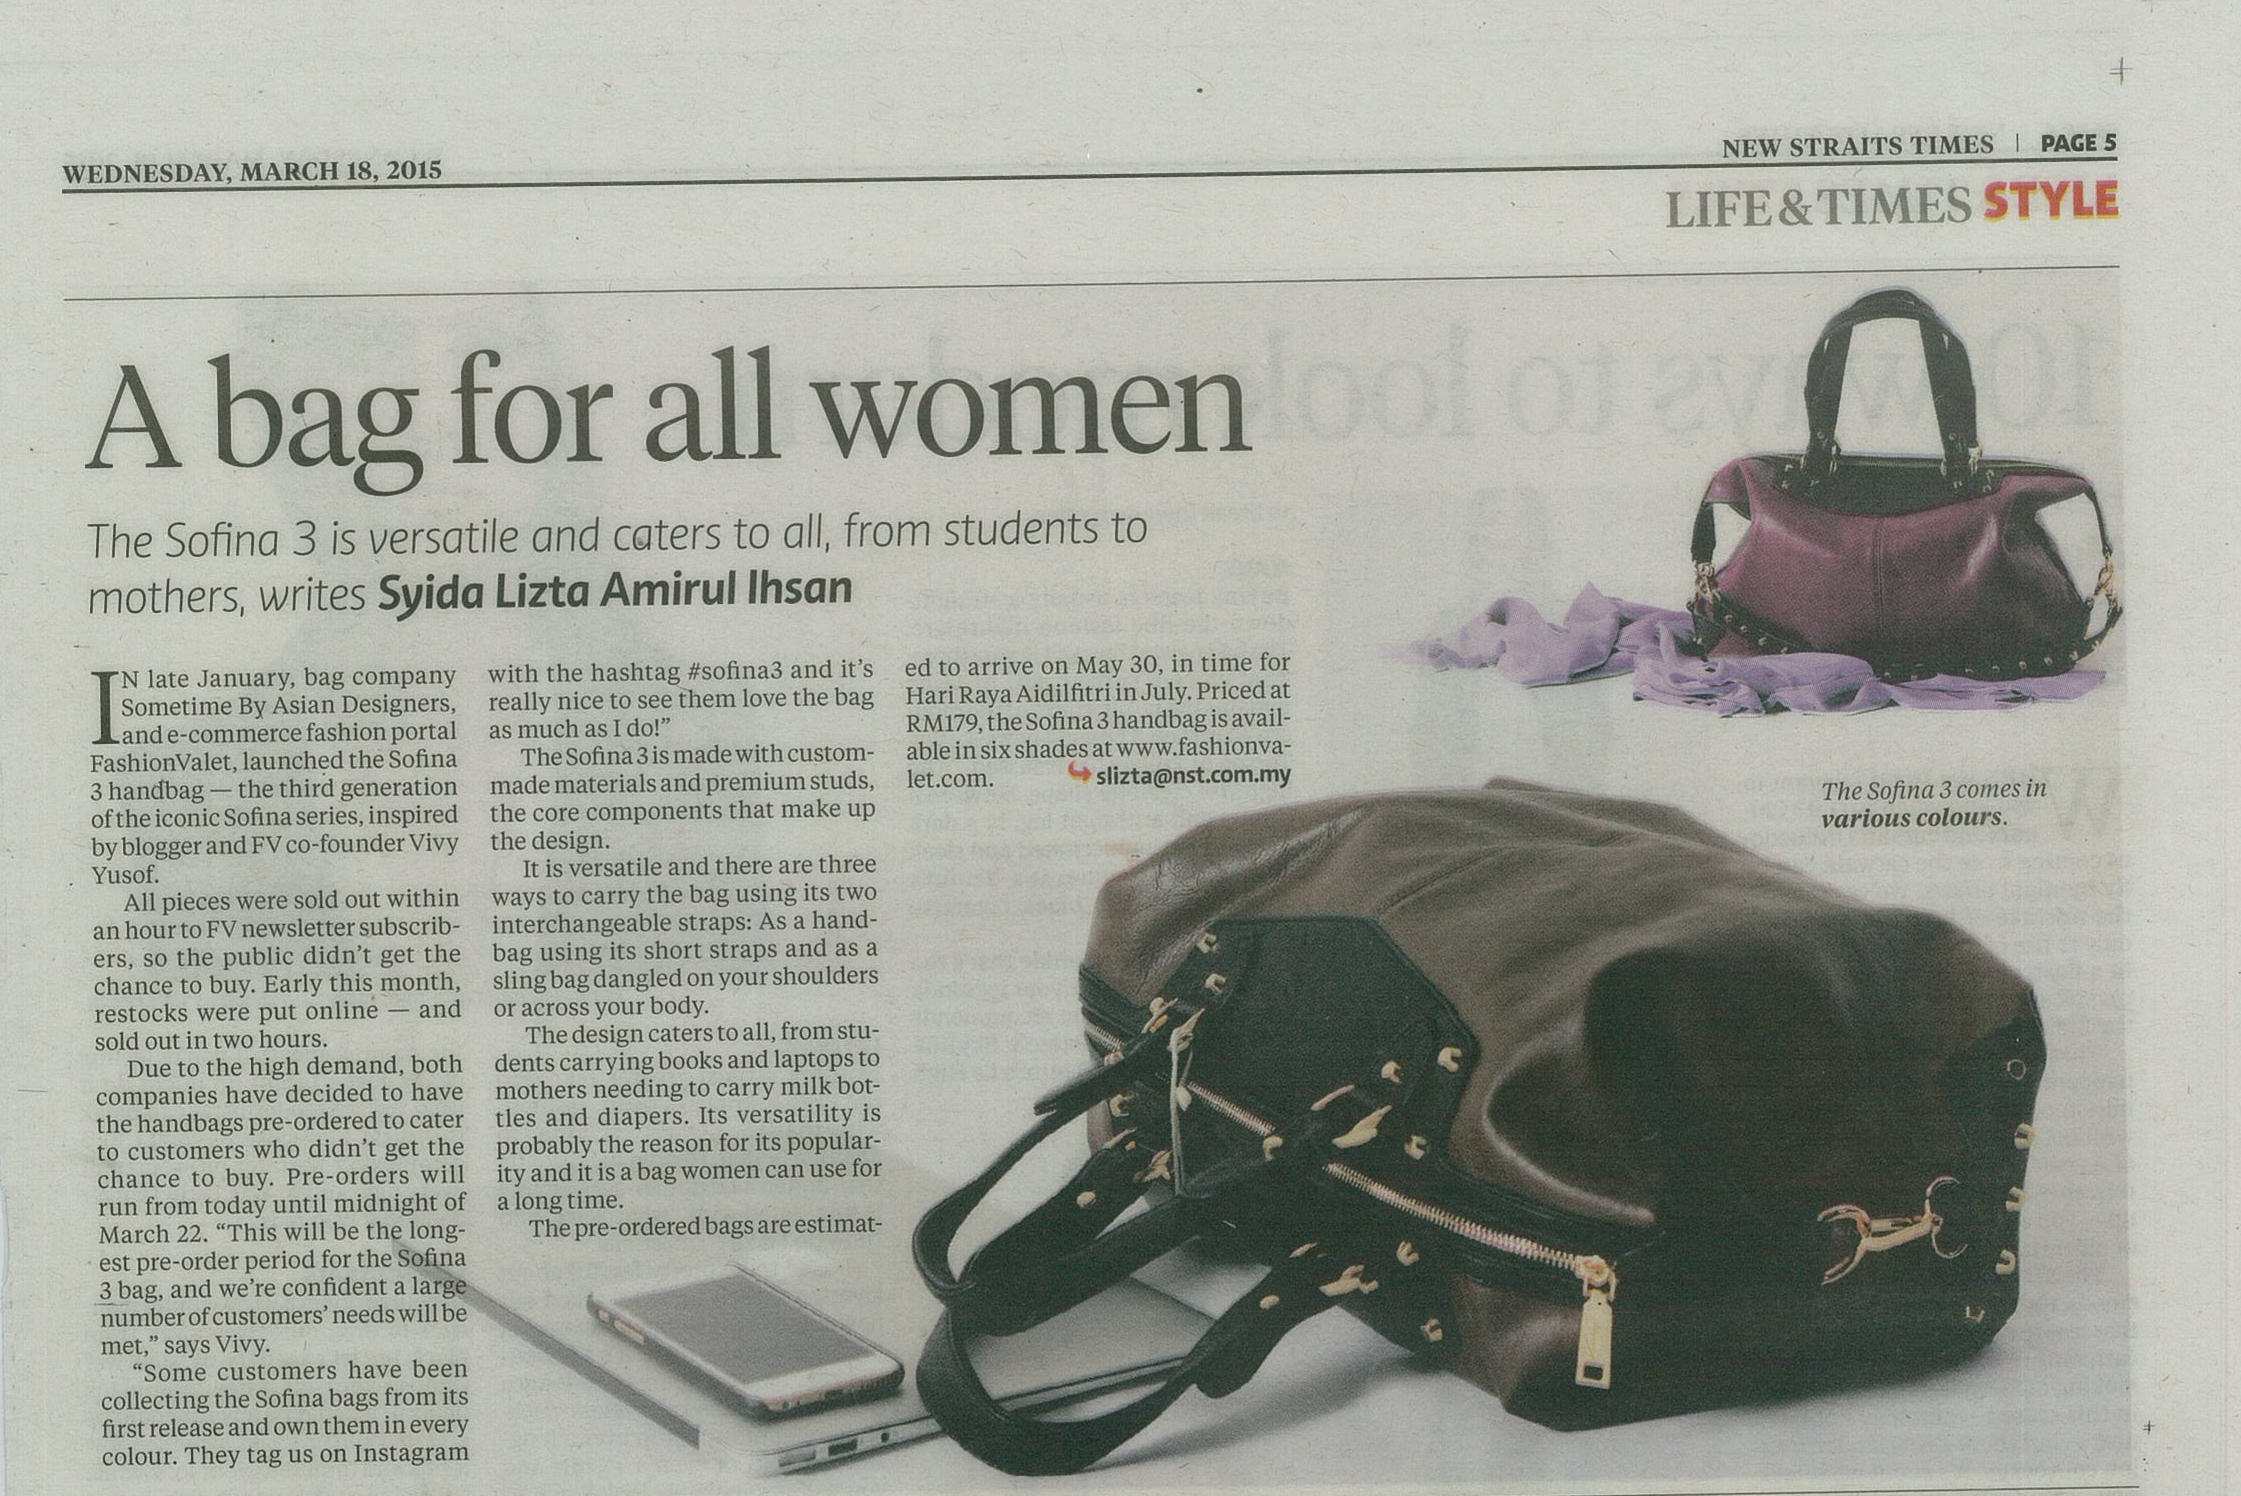 The New Straits Times - March